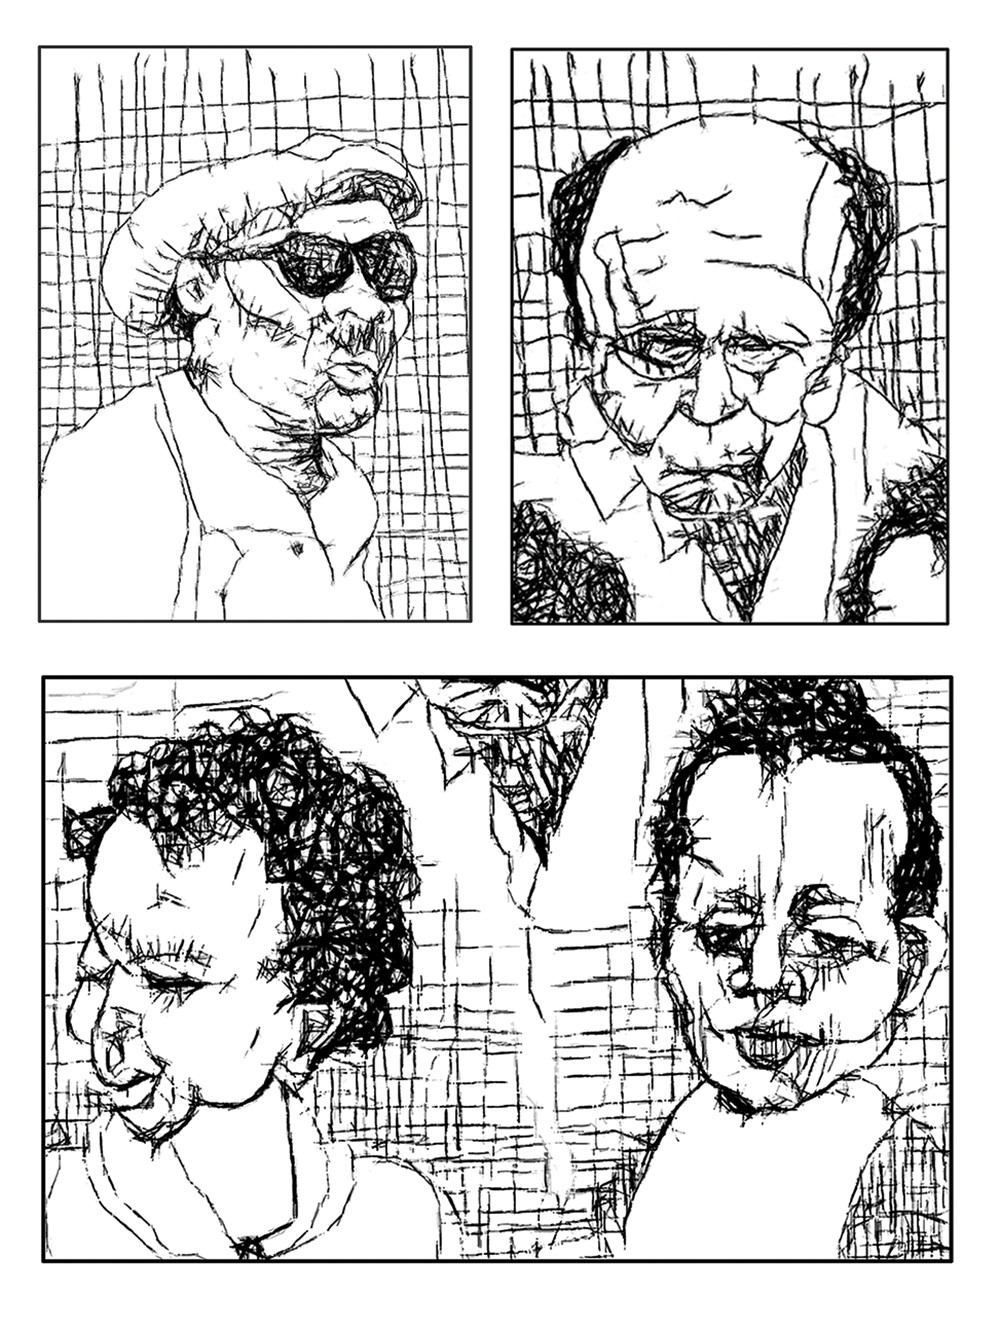 B&W three panel drawing of two men and two girls.